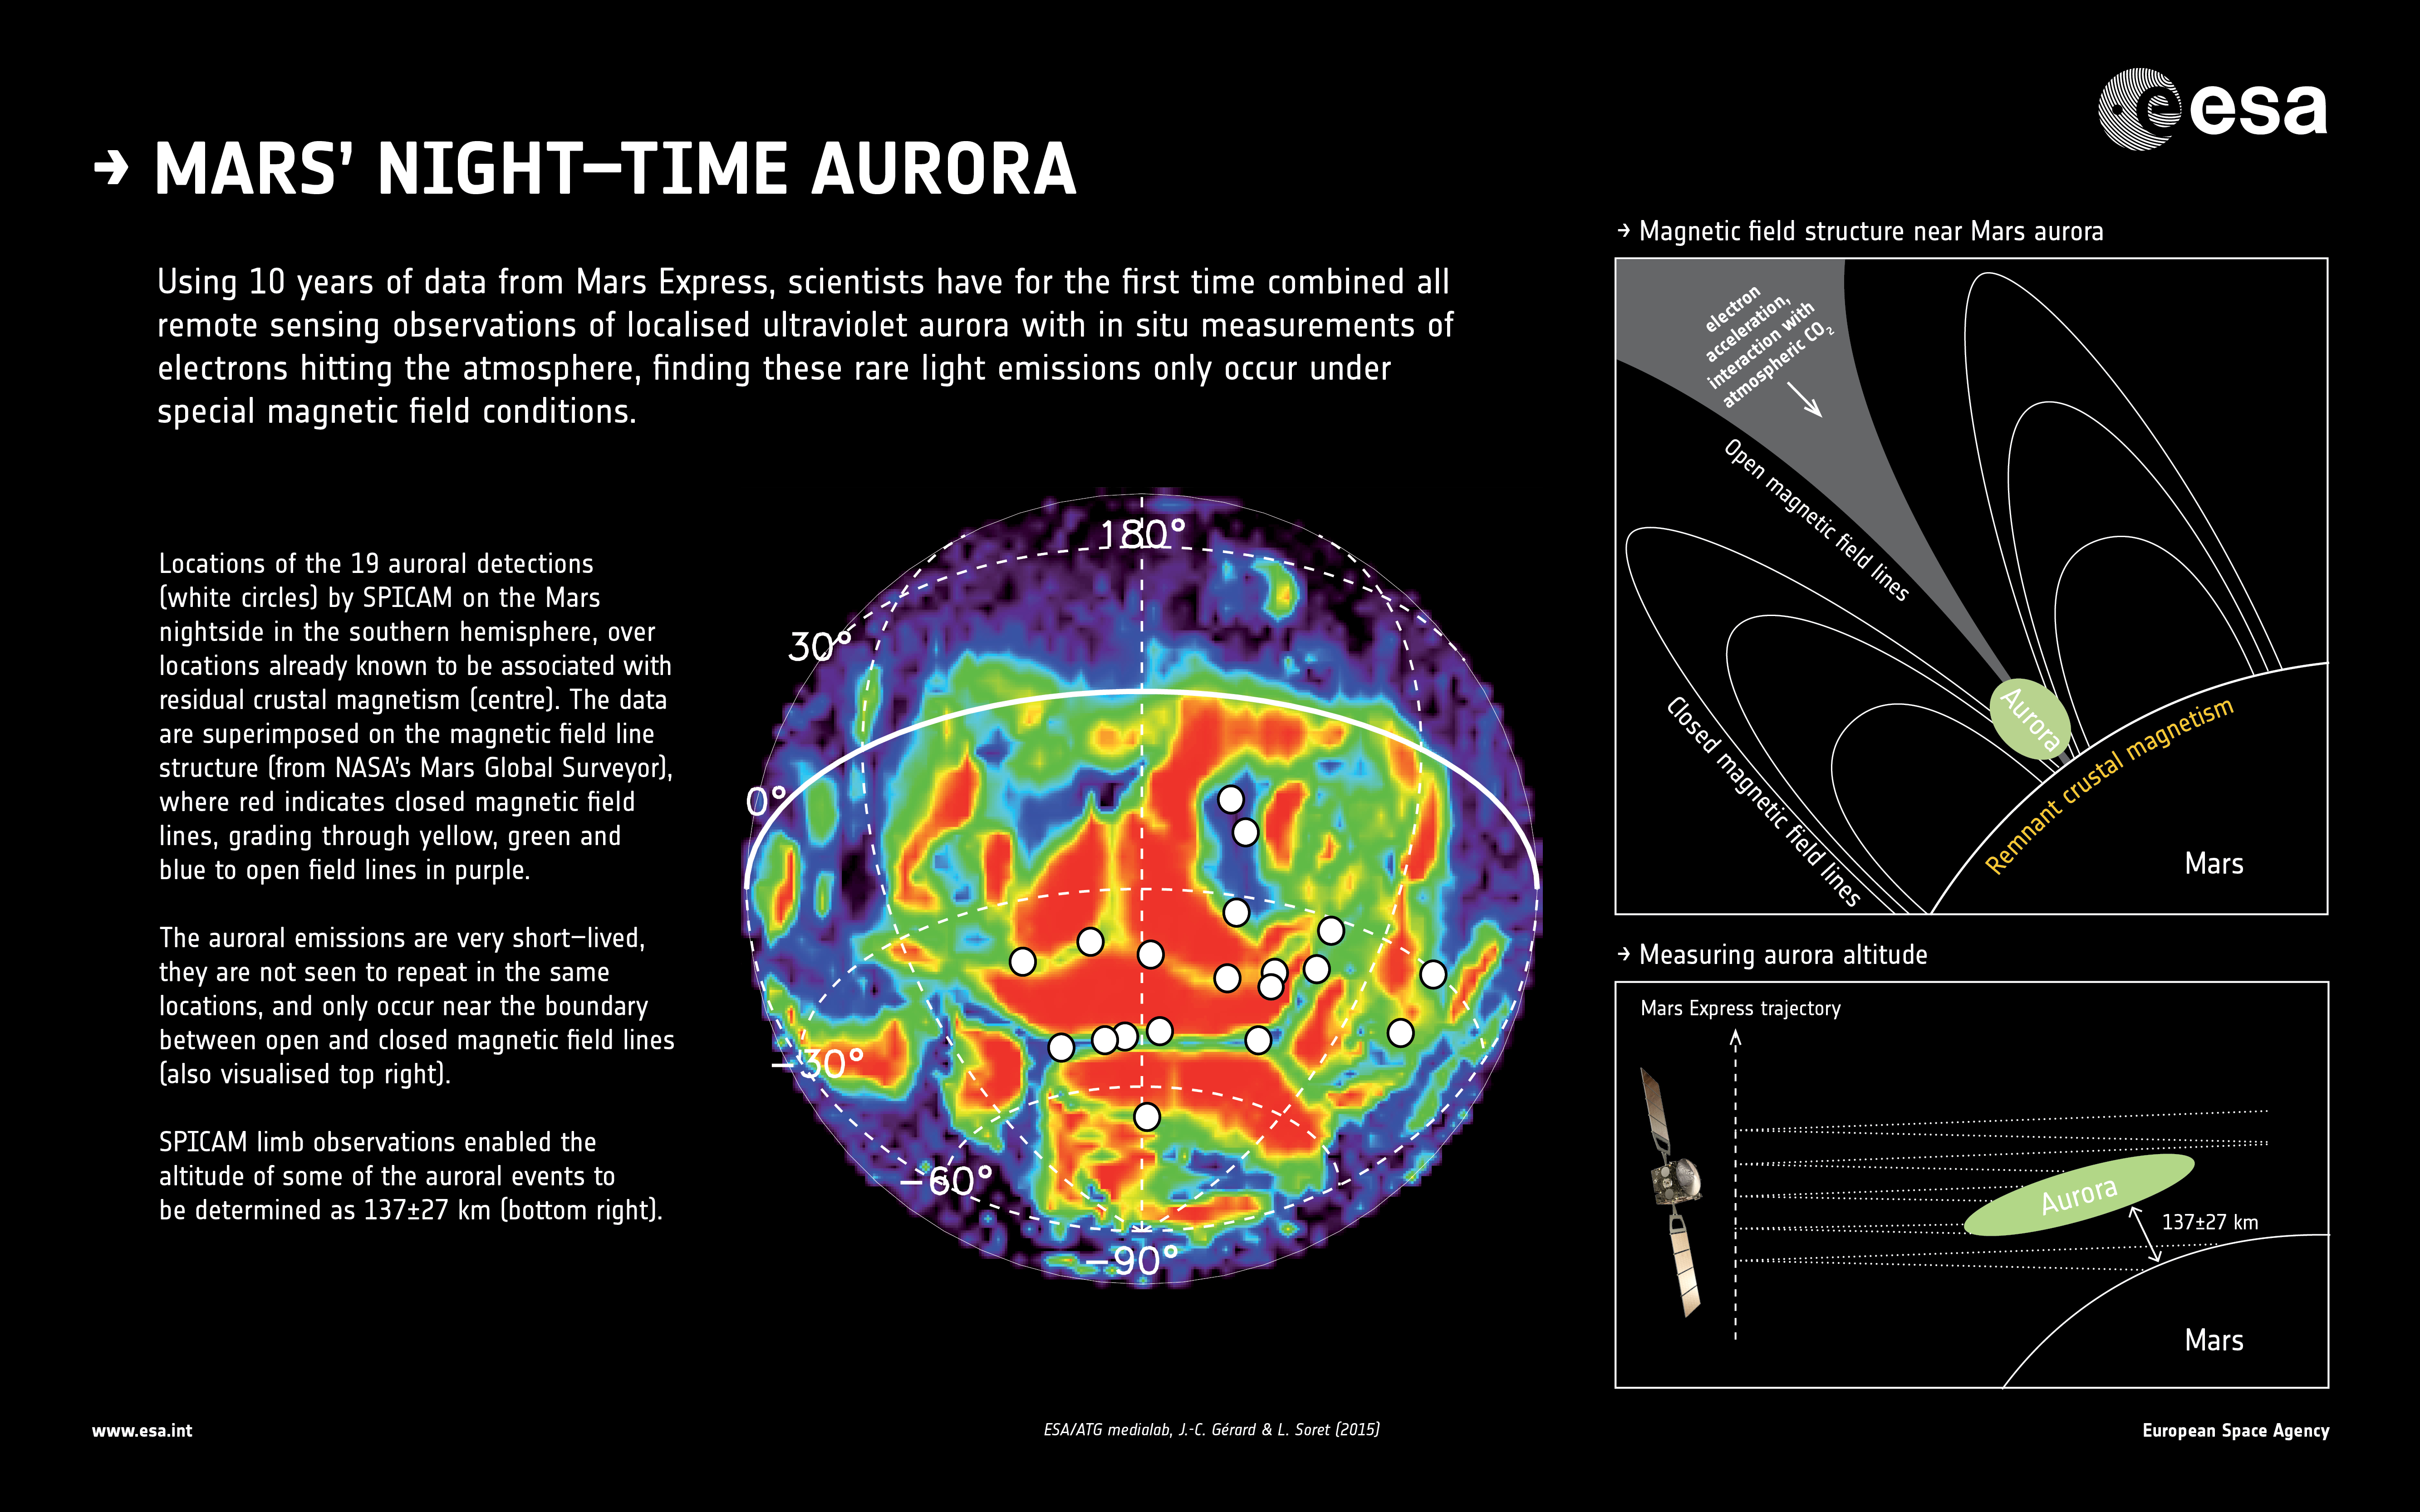 space in images - 2015 - 11 - mars' night-time aurora diagram of inside of the lungs